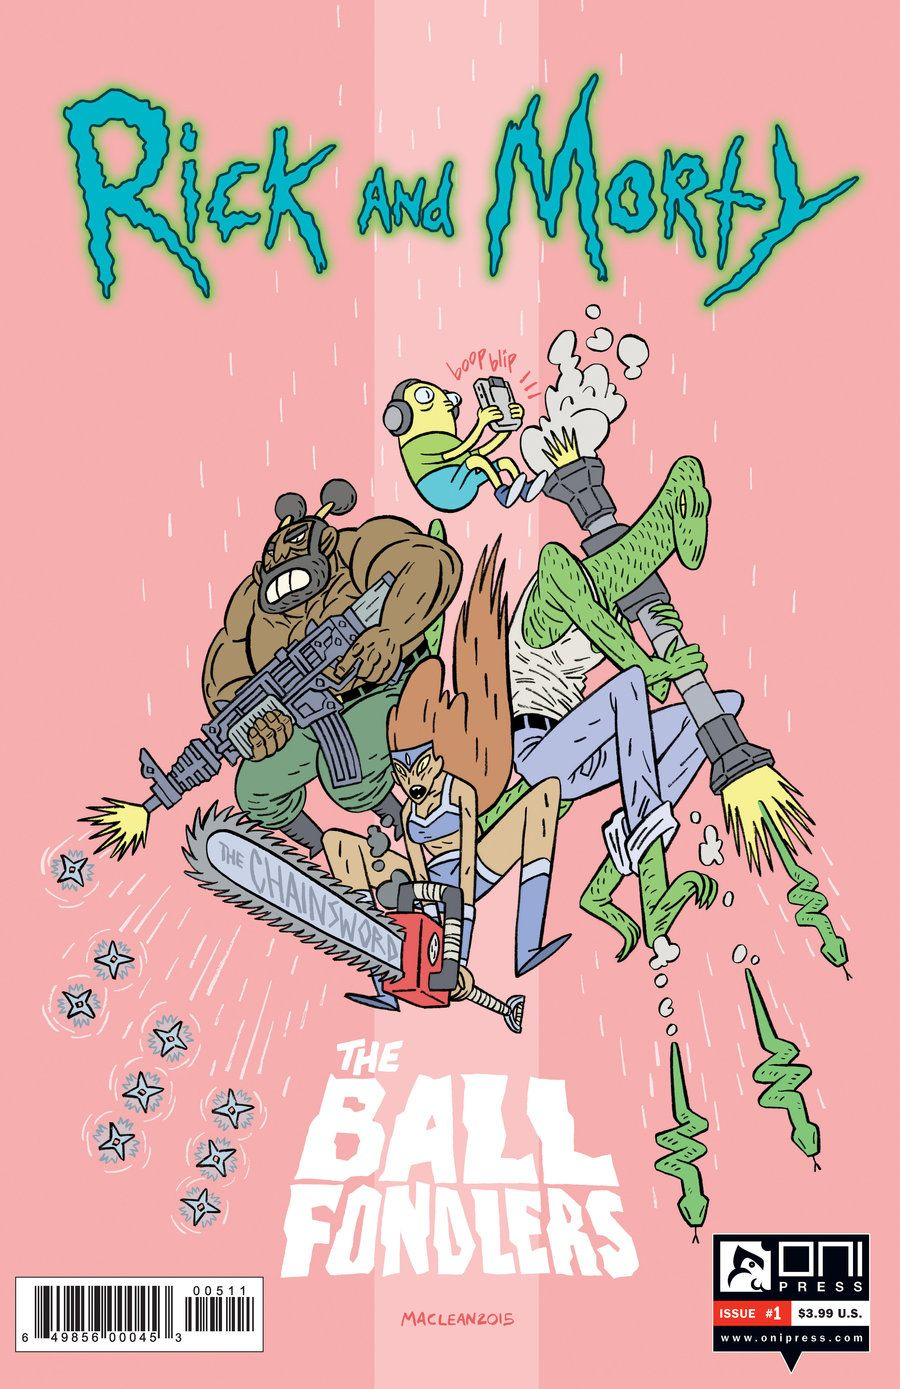 RICK and MORTY 6 Ball Fondlers by Andrew-Ross-MacLean | NDRW